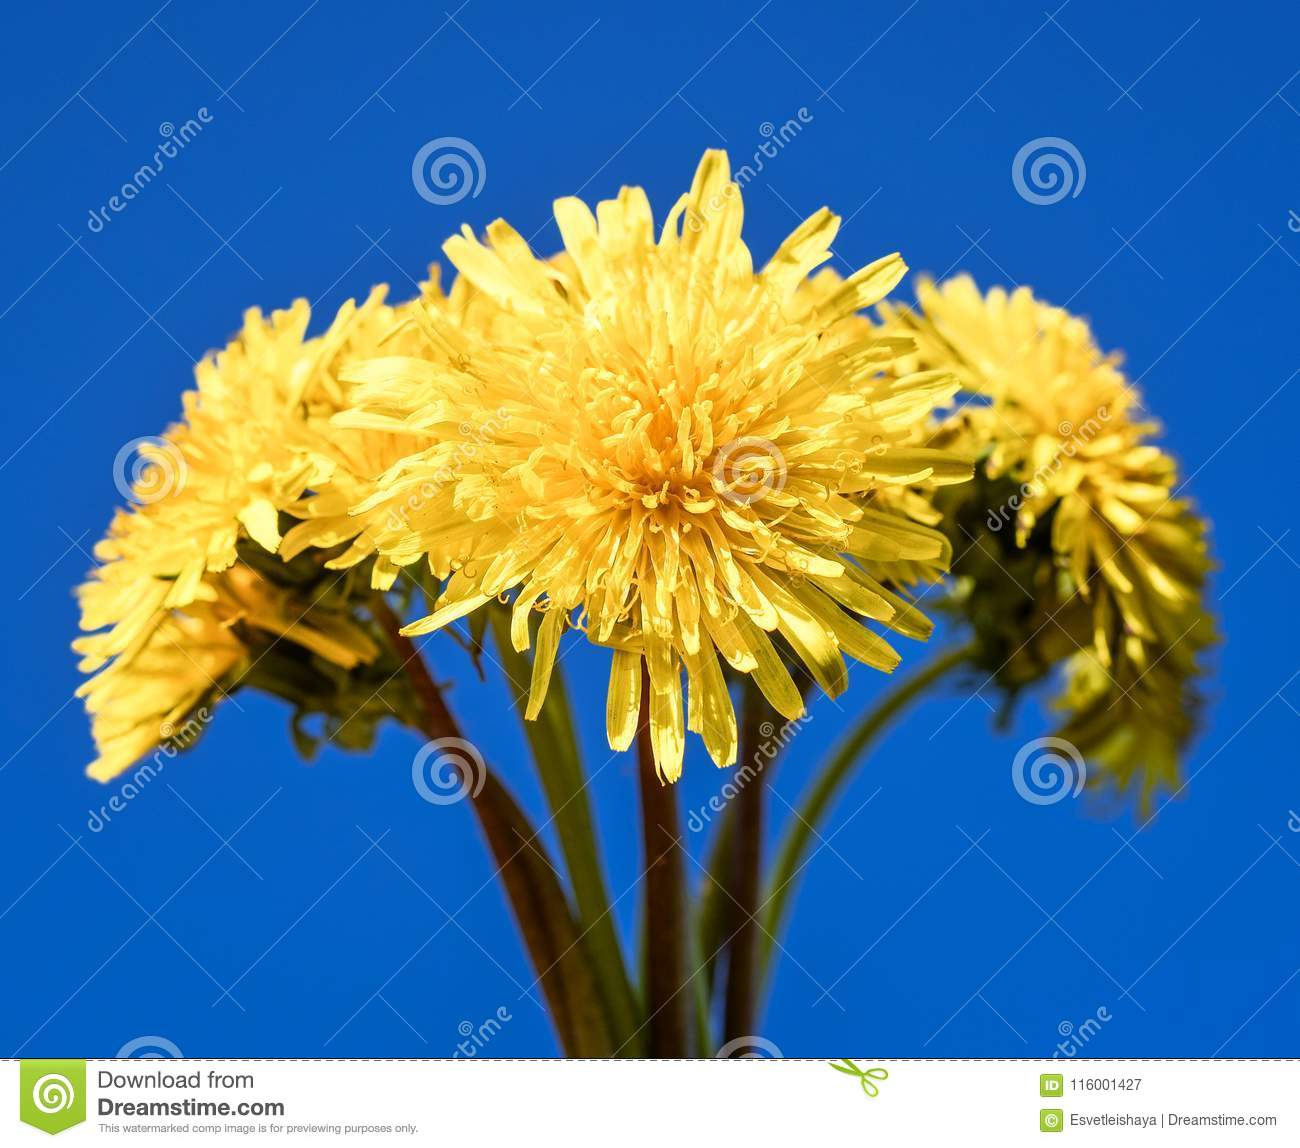 Bouquet Of Dandelions And Bright Blue Sky As Background